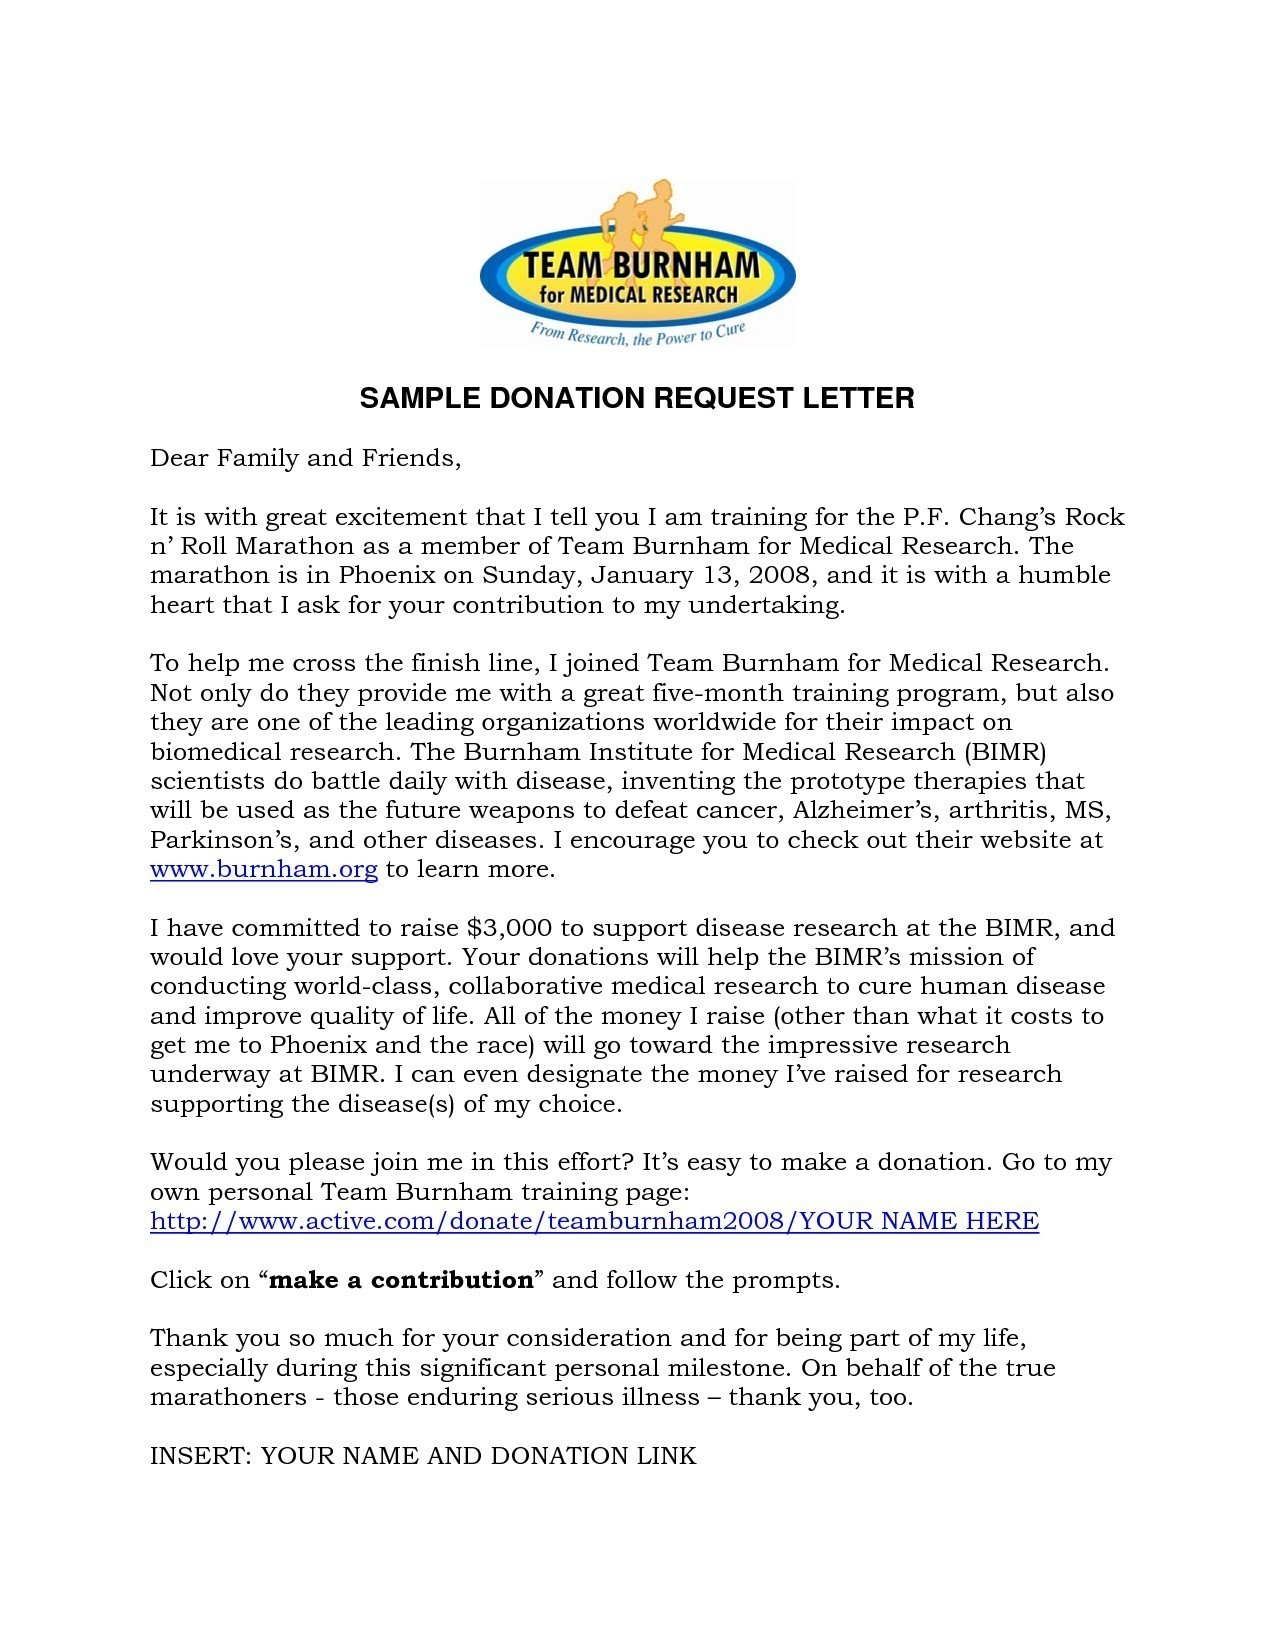 Letter asking for Donations Template - Samples Letters Request Donation New Sample Letters for Request for